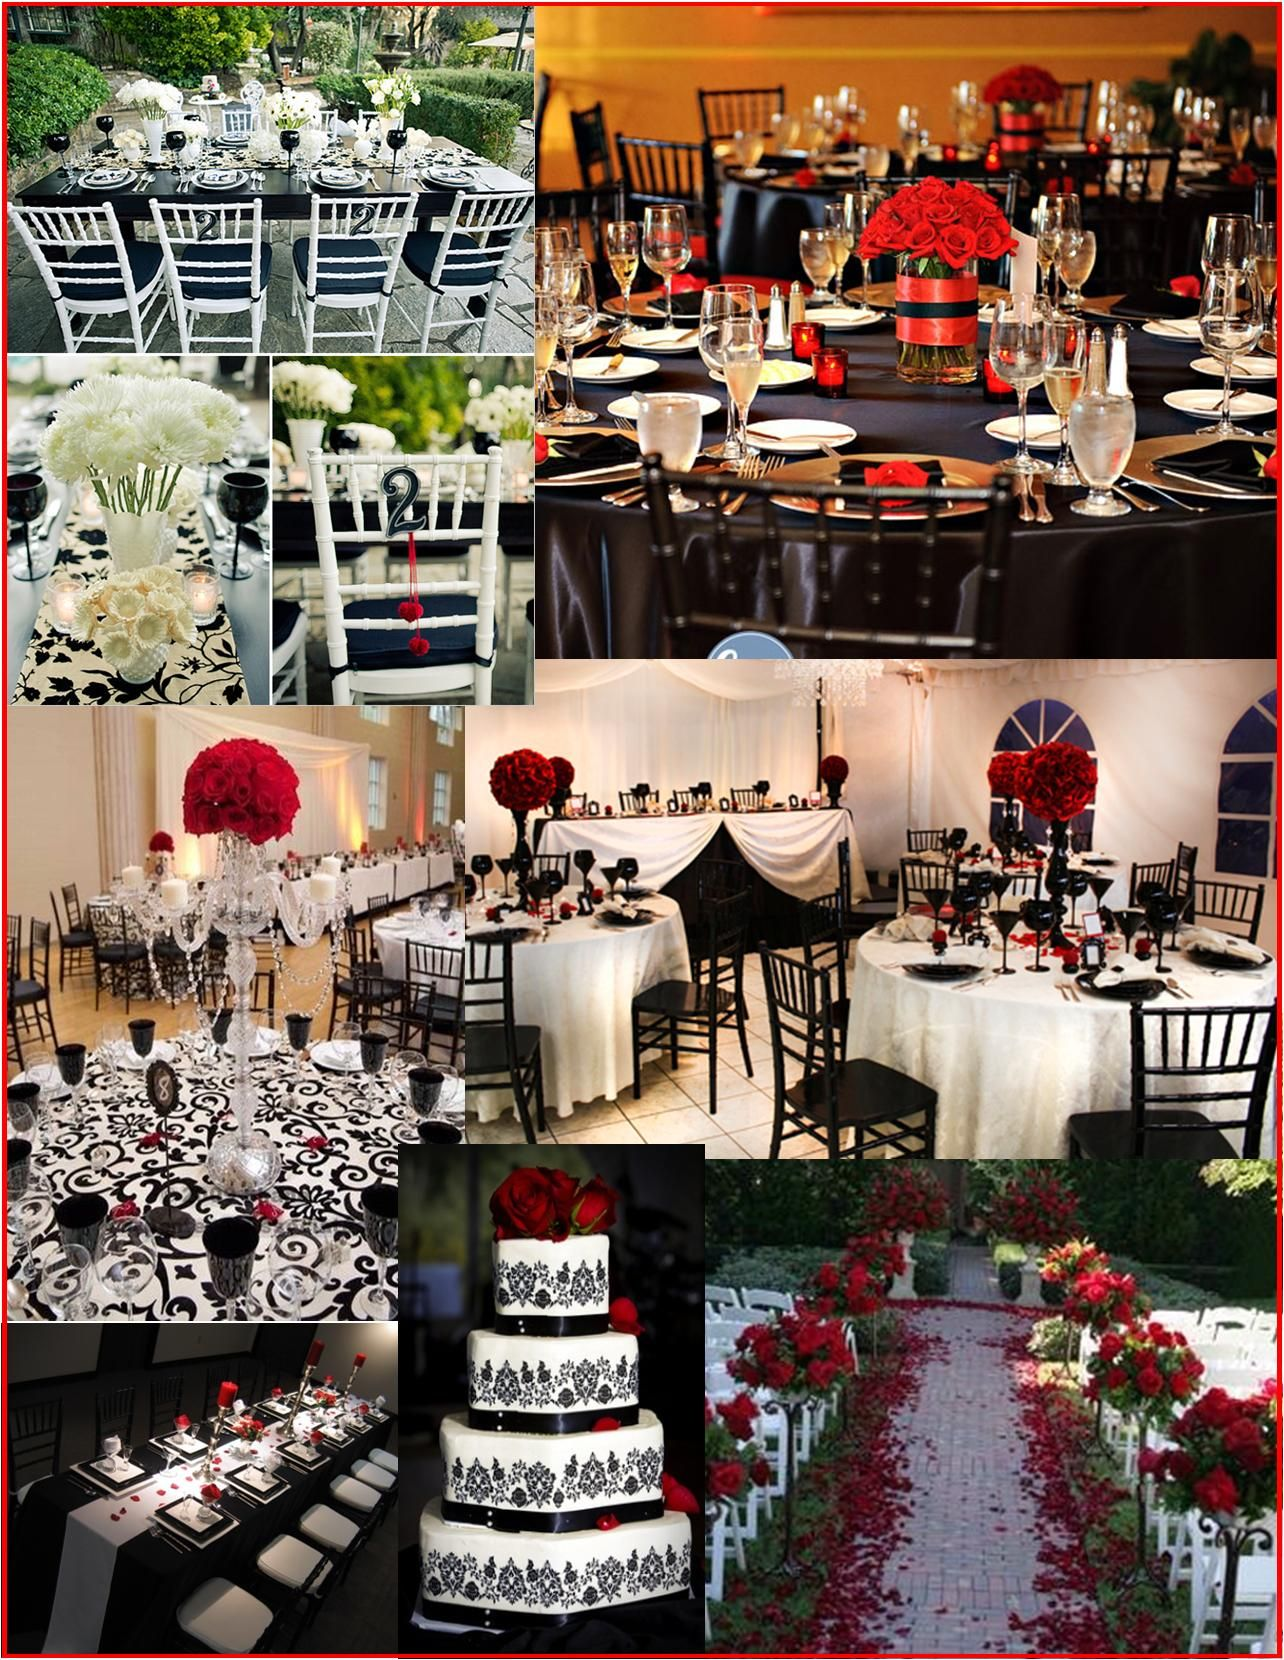 Wedding decoration ideas red and white  black and red wedding ideas  Red and Turquoise  Boda  Pinterest